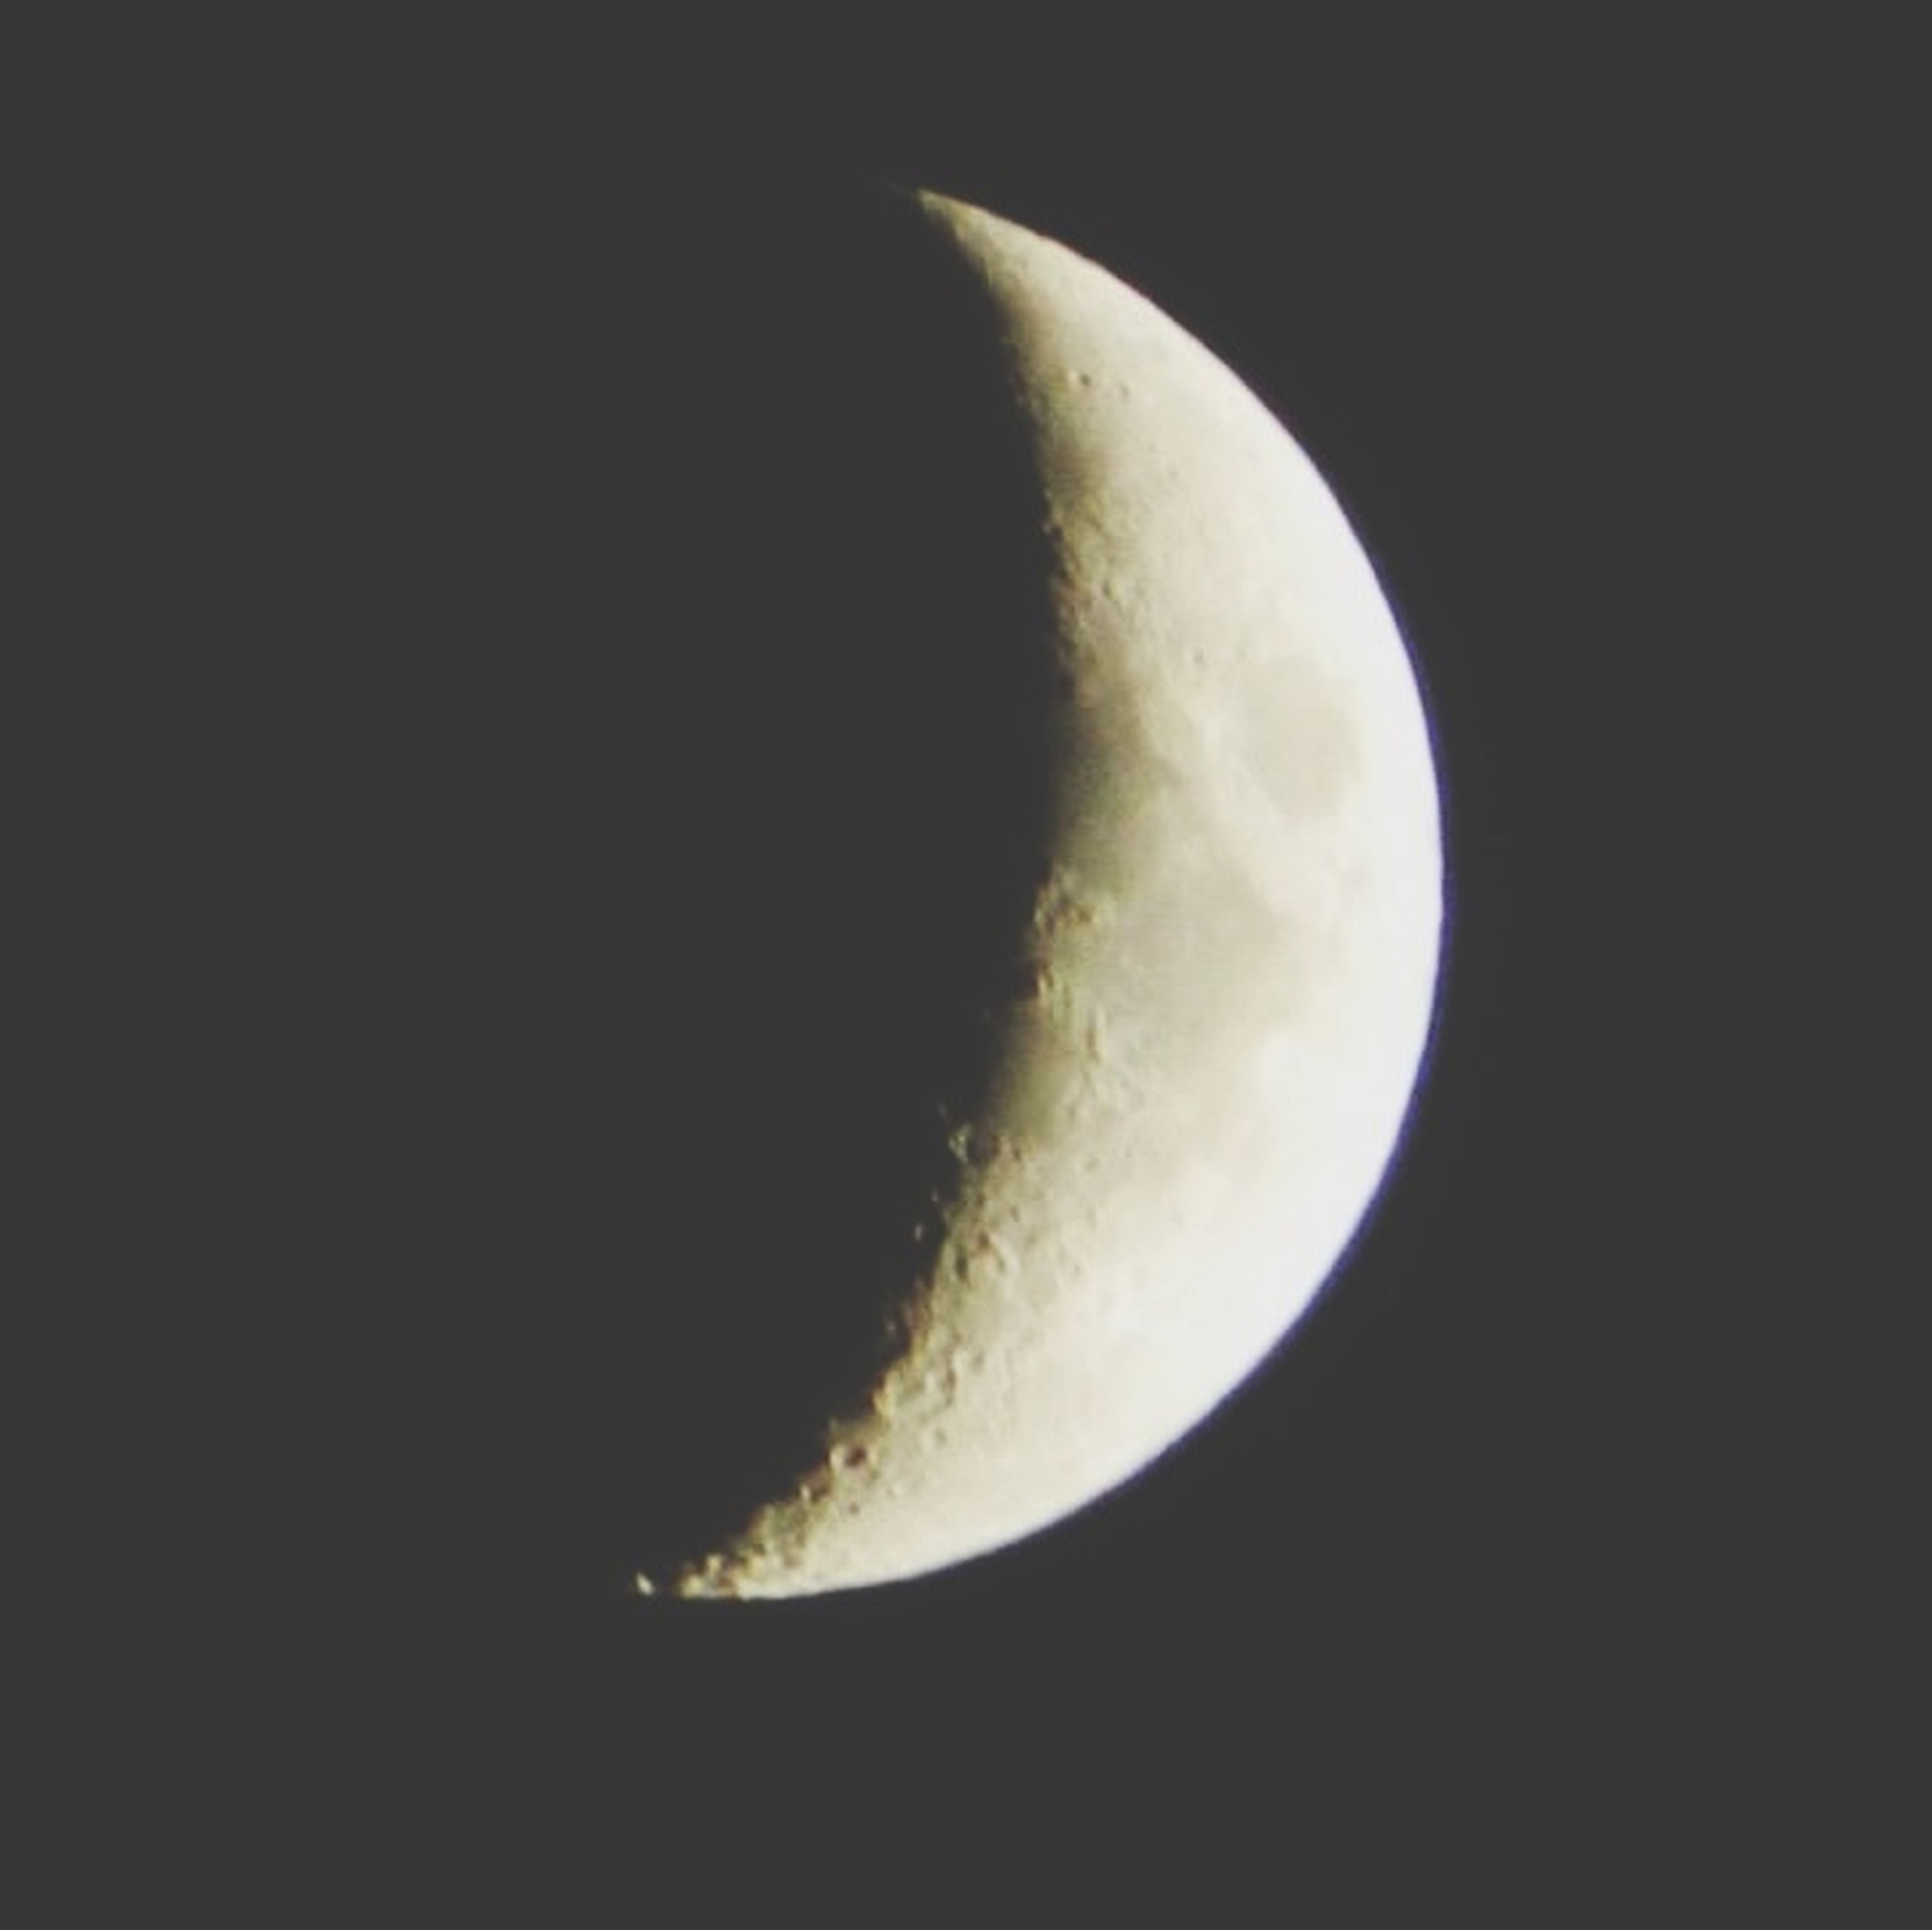 moon, astronomy, night, planetary moon, full moon, beauty in nature, moon surface, scenics, sky, tranquil scene, low angle view, nature, tranquility, dark, space exploration, copy space, majestic, circle, discovery, space